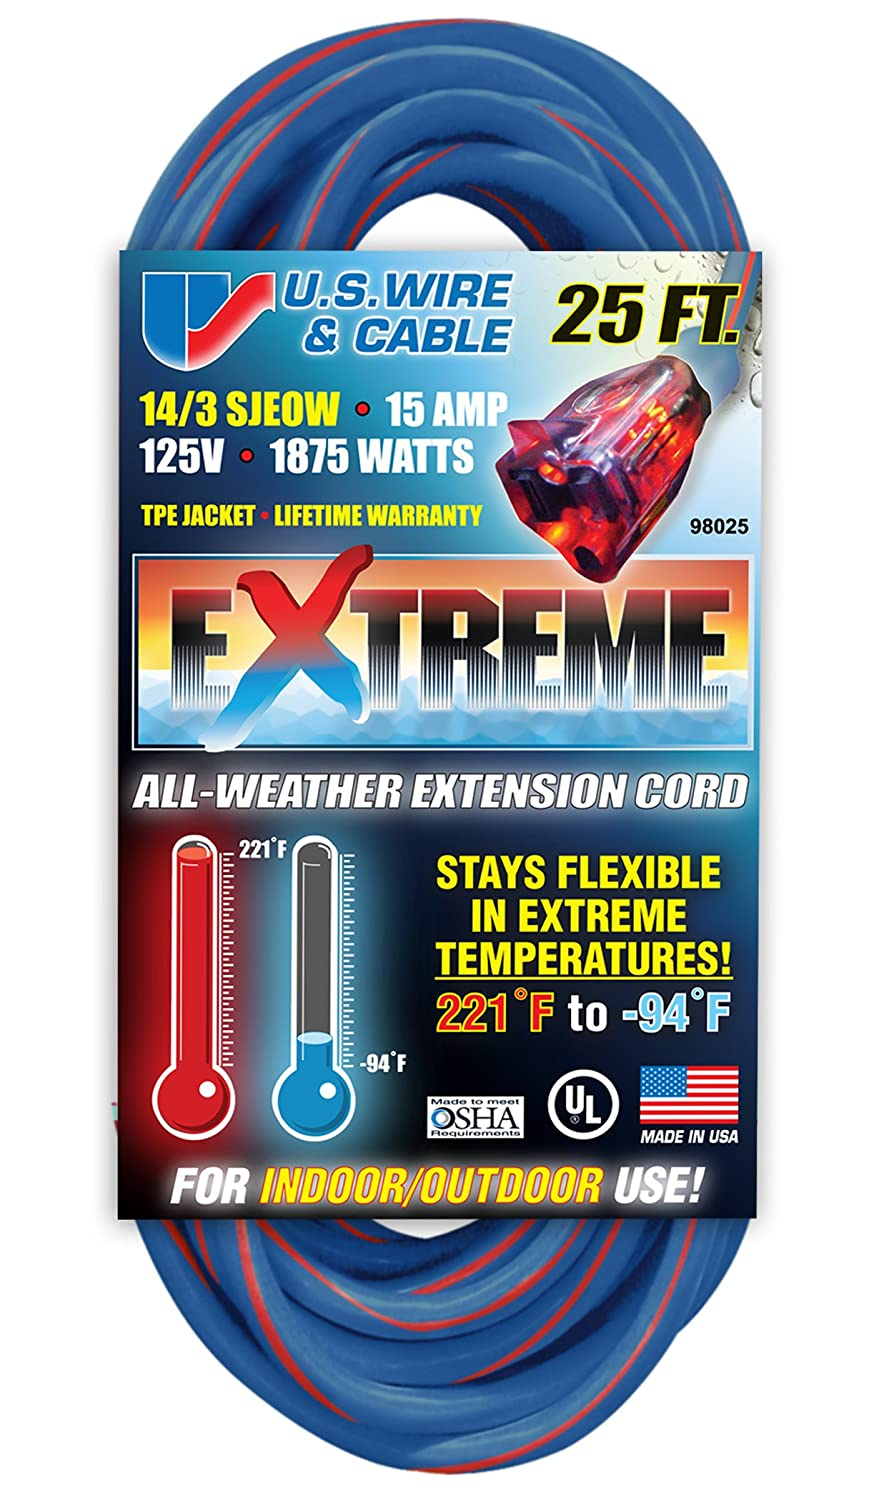 US Wire 98025 14//3 25-Foot SJEOW TPE Extension Cord U.S Wire /& Cable 98025-USWIRE Blue, 2-Pack